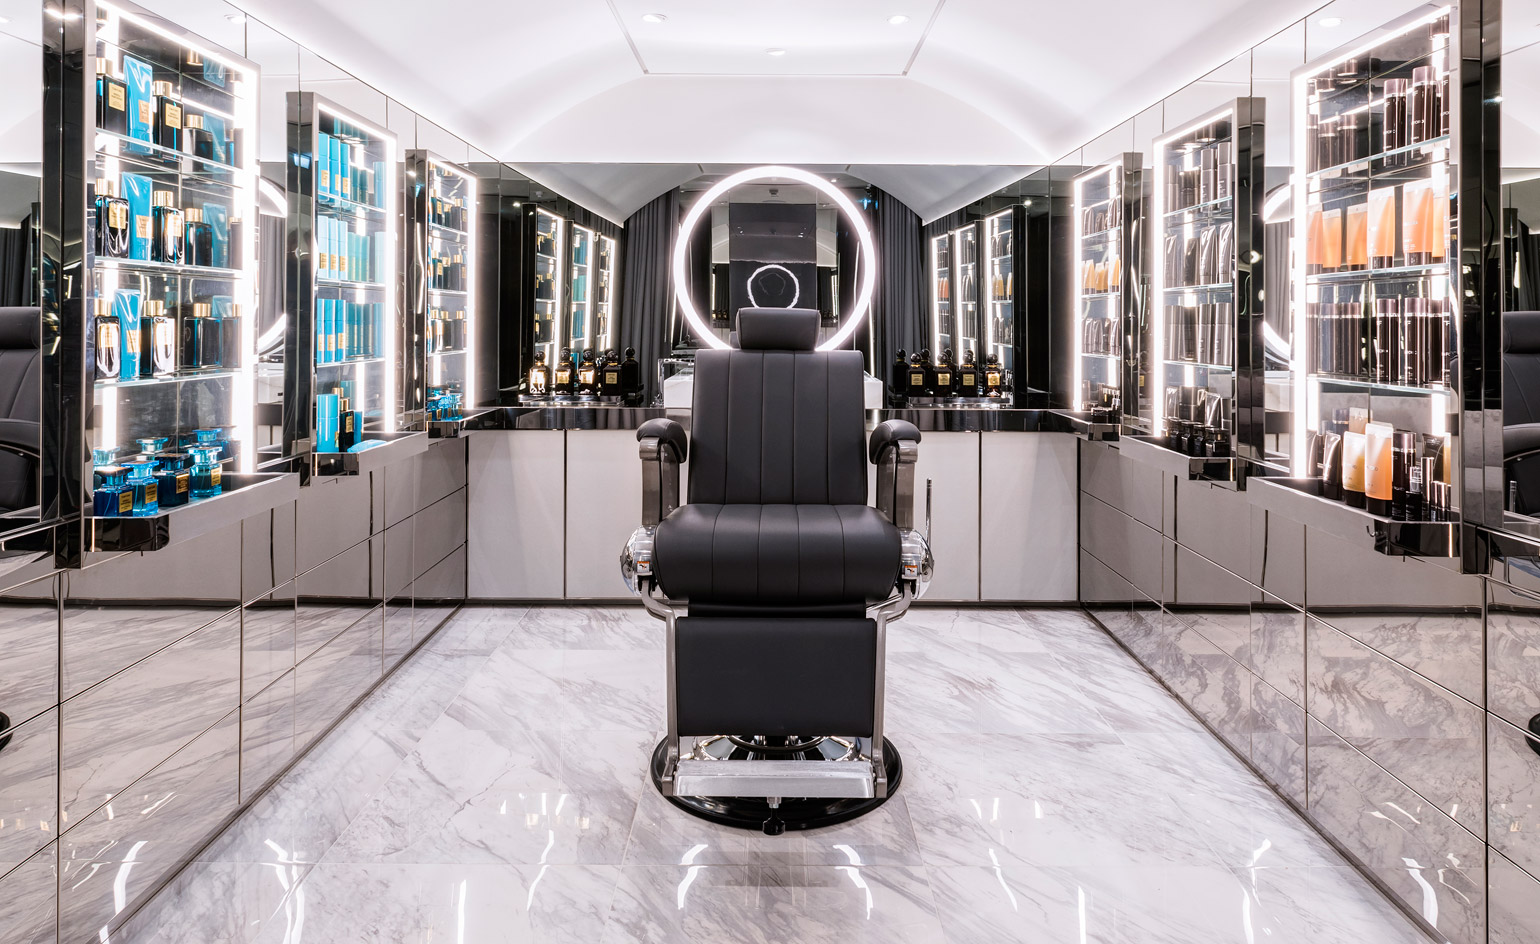 Tom Ford has launched his inaugural standalone beauty store in London.